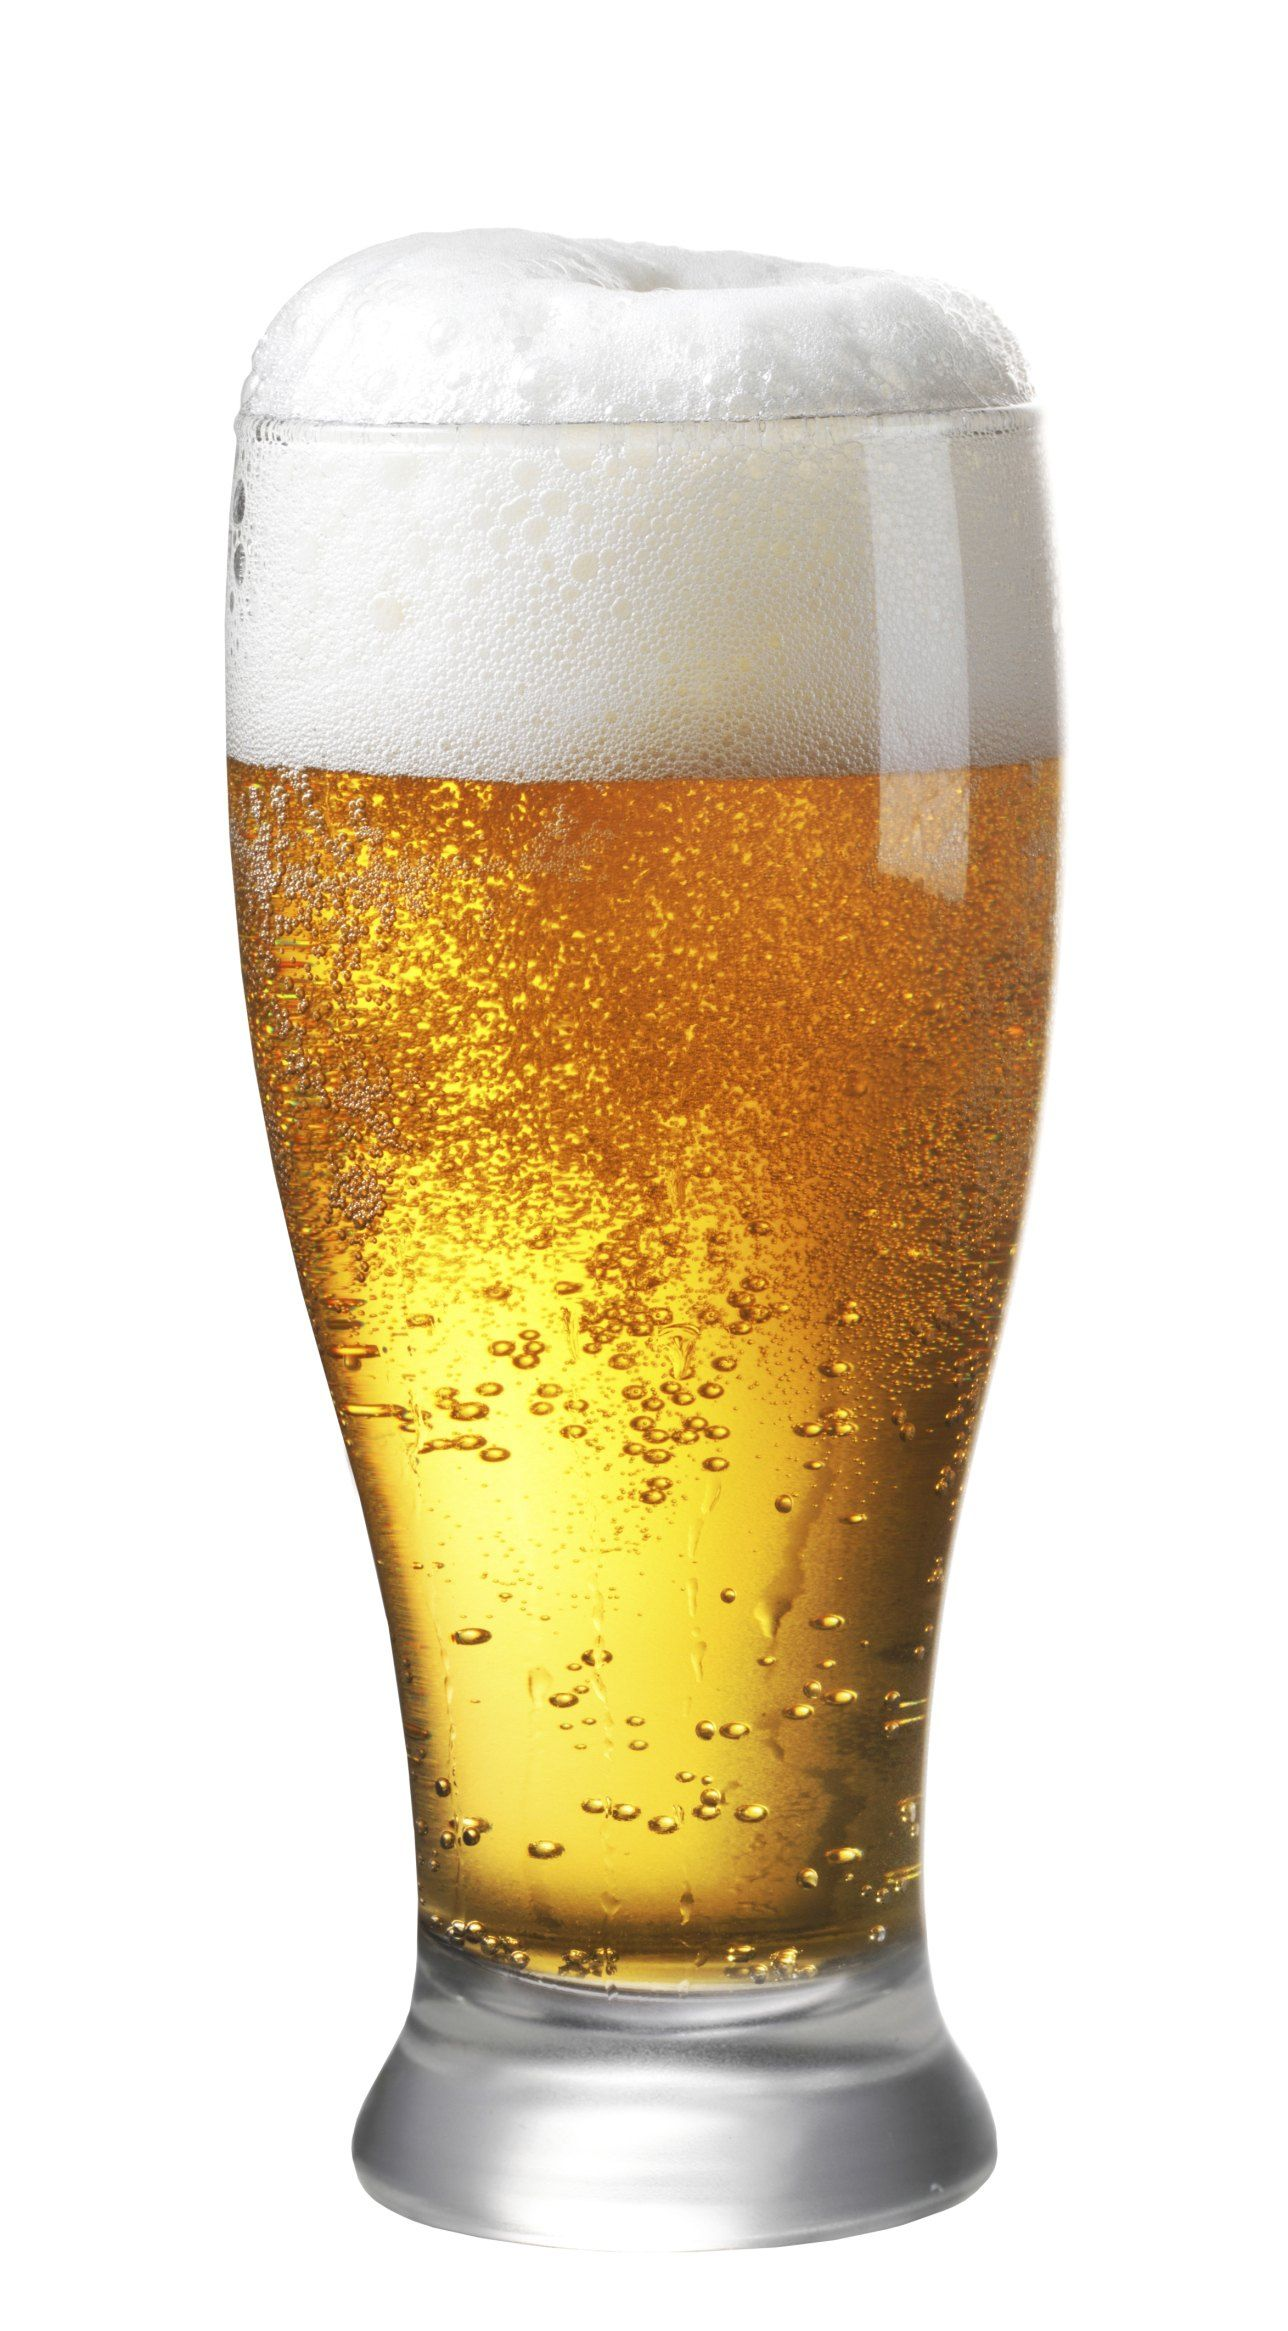 Is alcohol permitted on a clear liquid diet before a